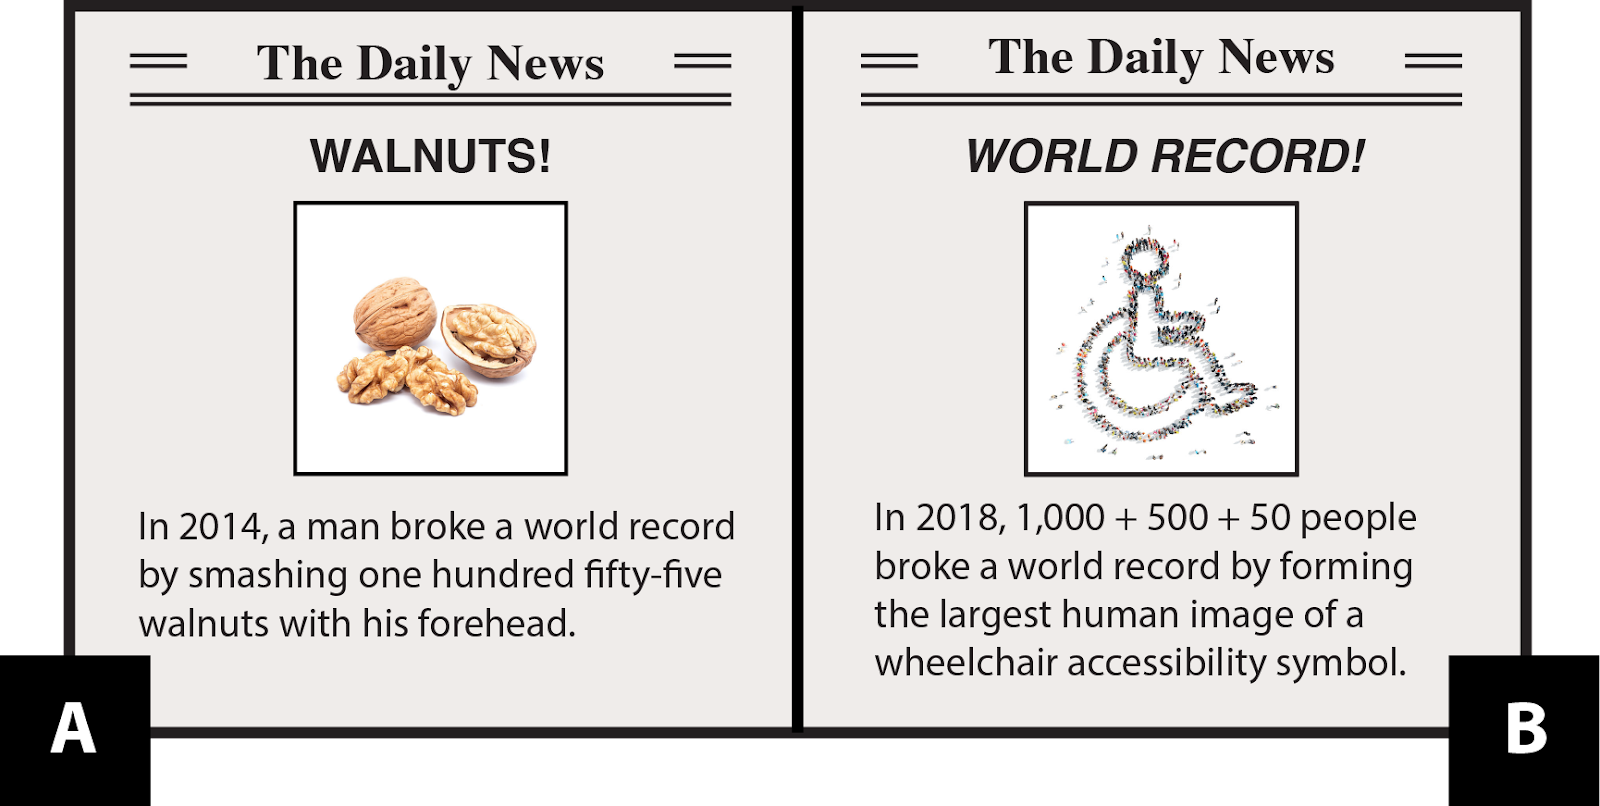 A. In 2014, a man broke a world record by smashing one hundred fifty-five walnuts with his forehead. B. In 2018, 1,000 + 500 + 50 people broke a world record by forming the largest human image of a wheelchair accessibility symbol.